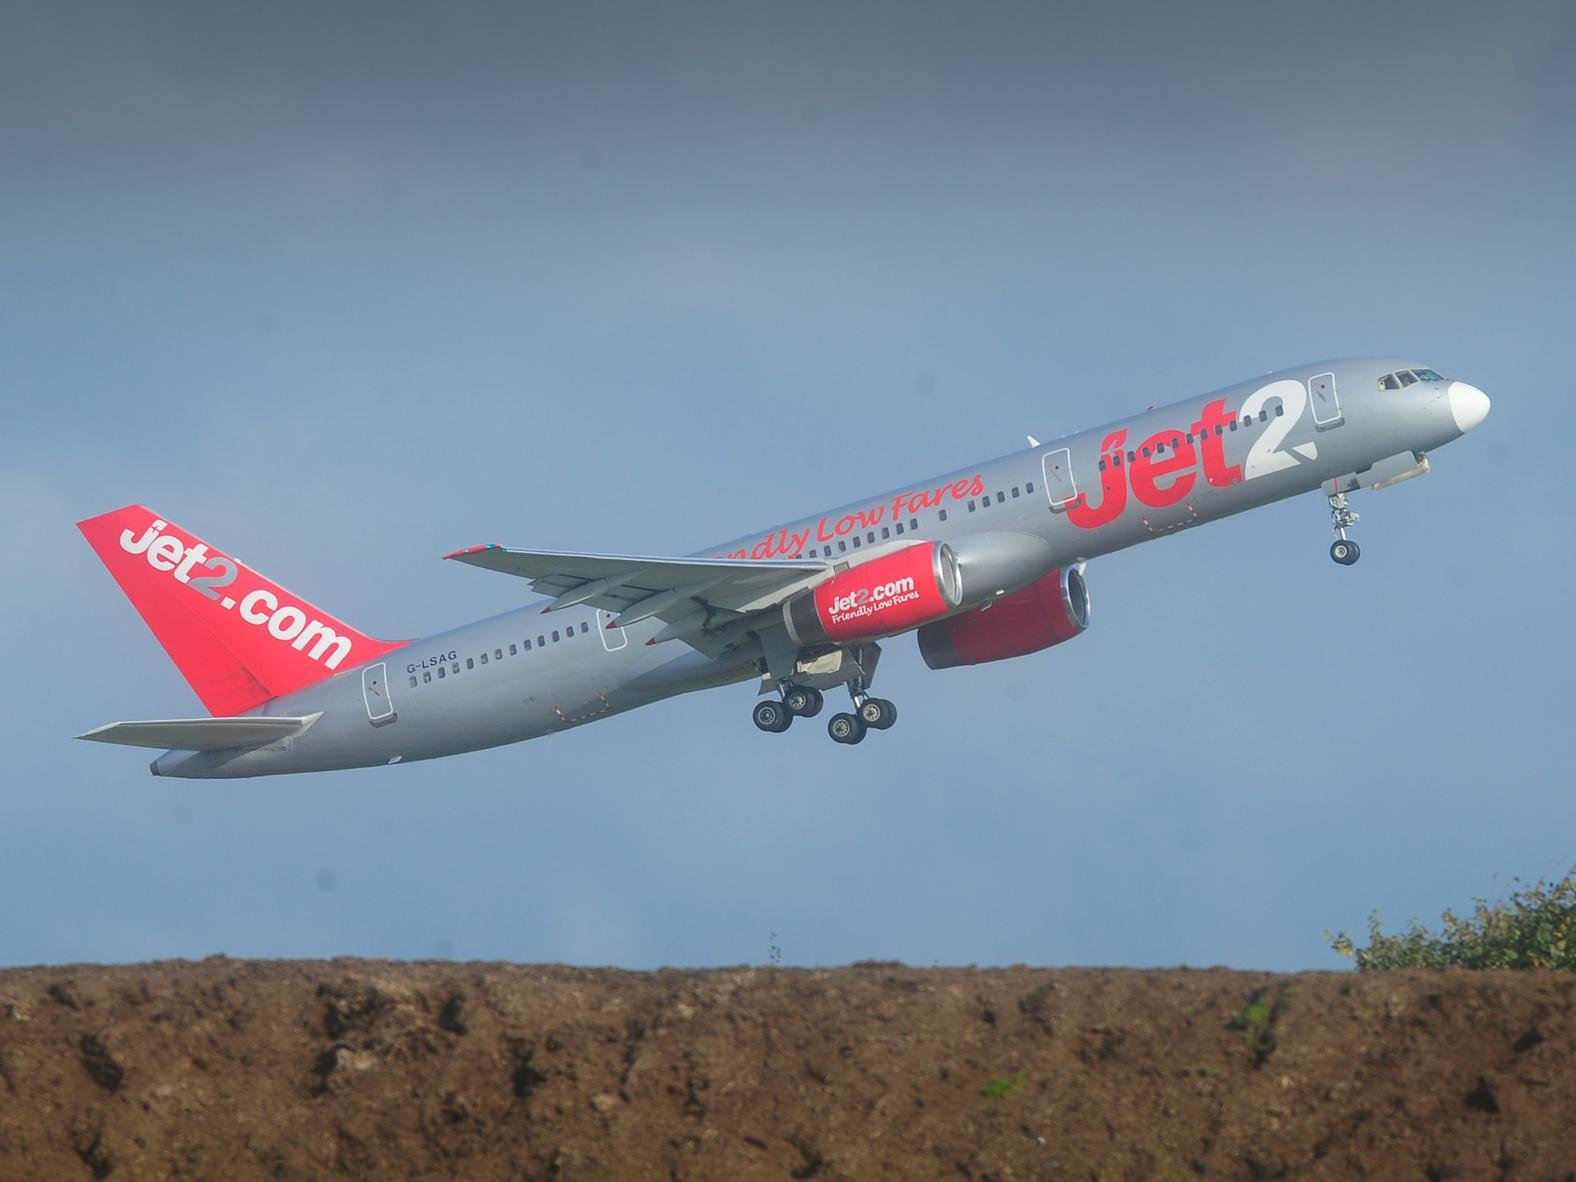 All Jet2 flights to Italy cancelled including from Leeds Bradford Airport due to Coronavirus outbreak